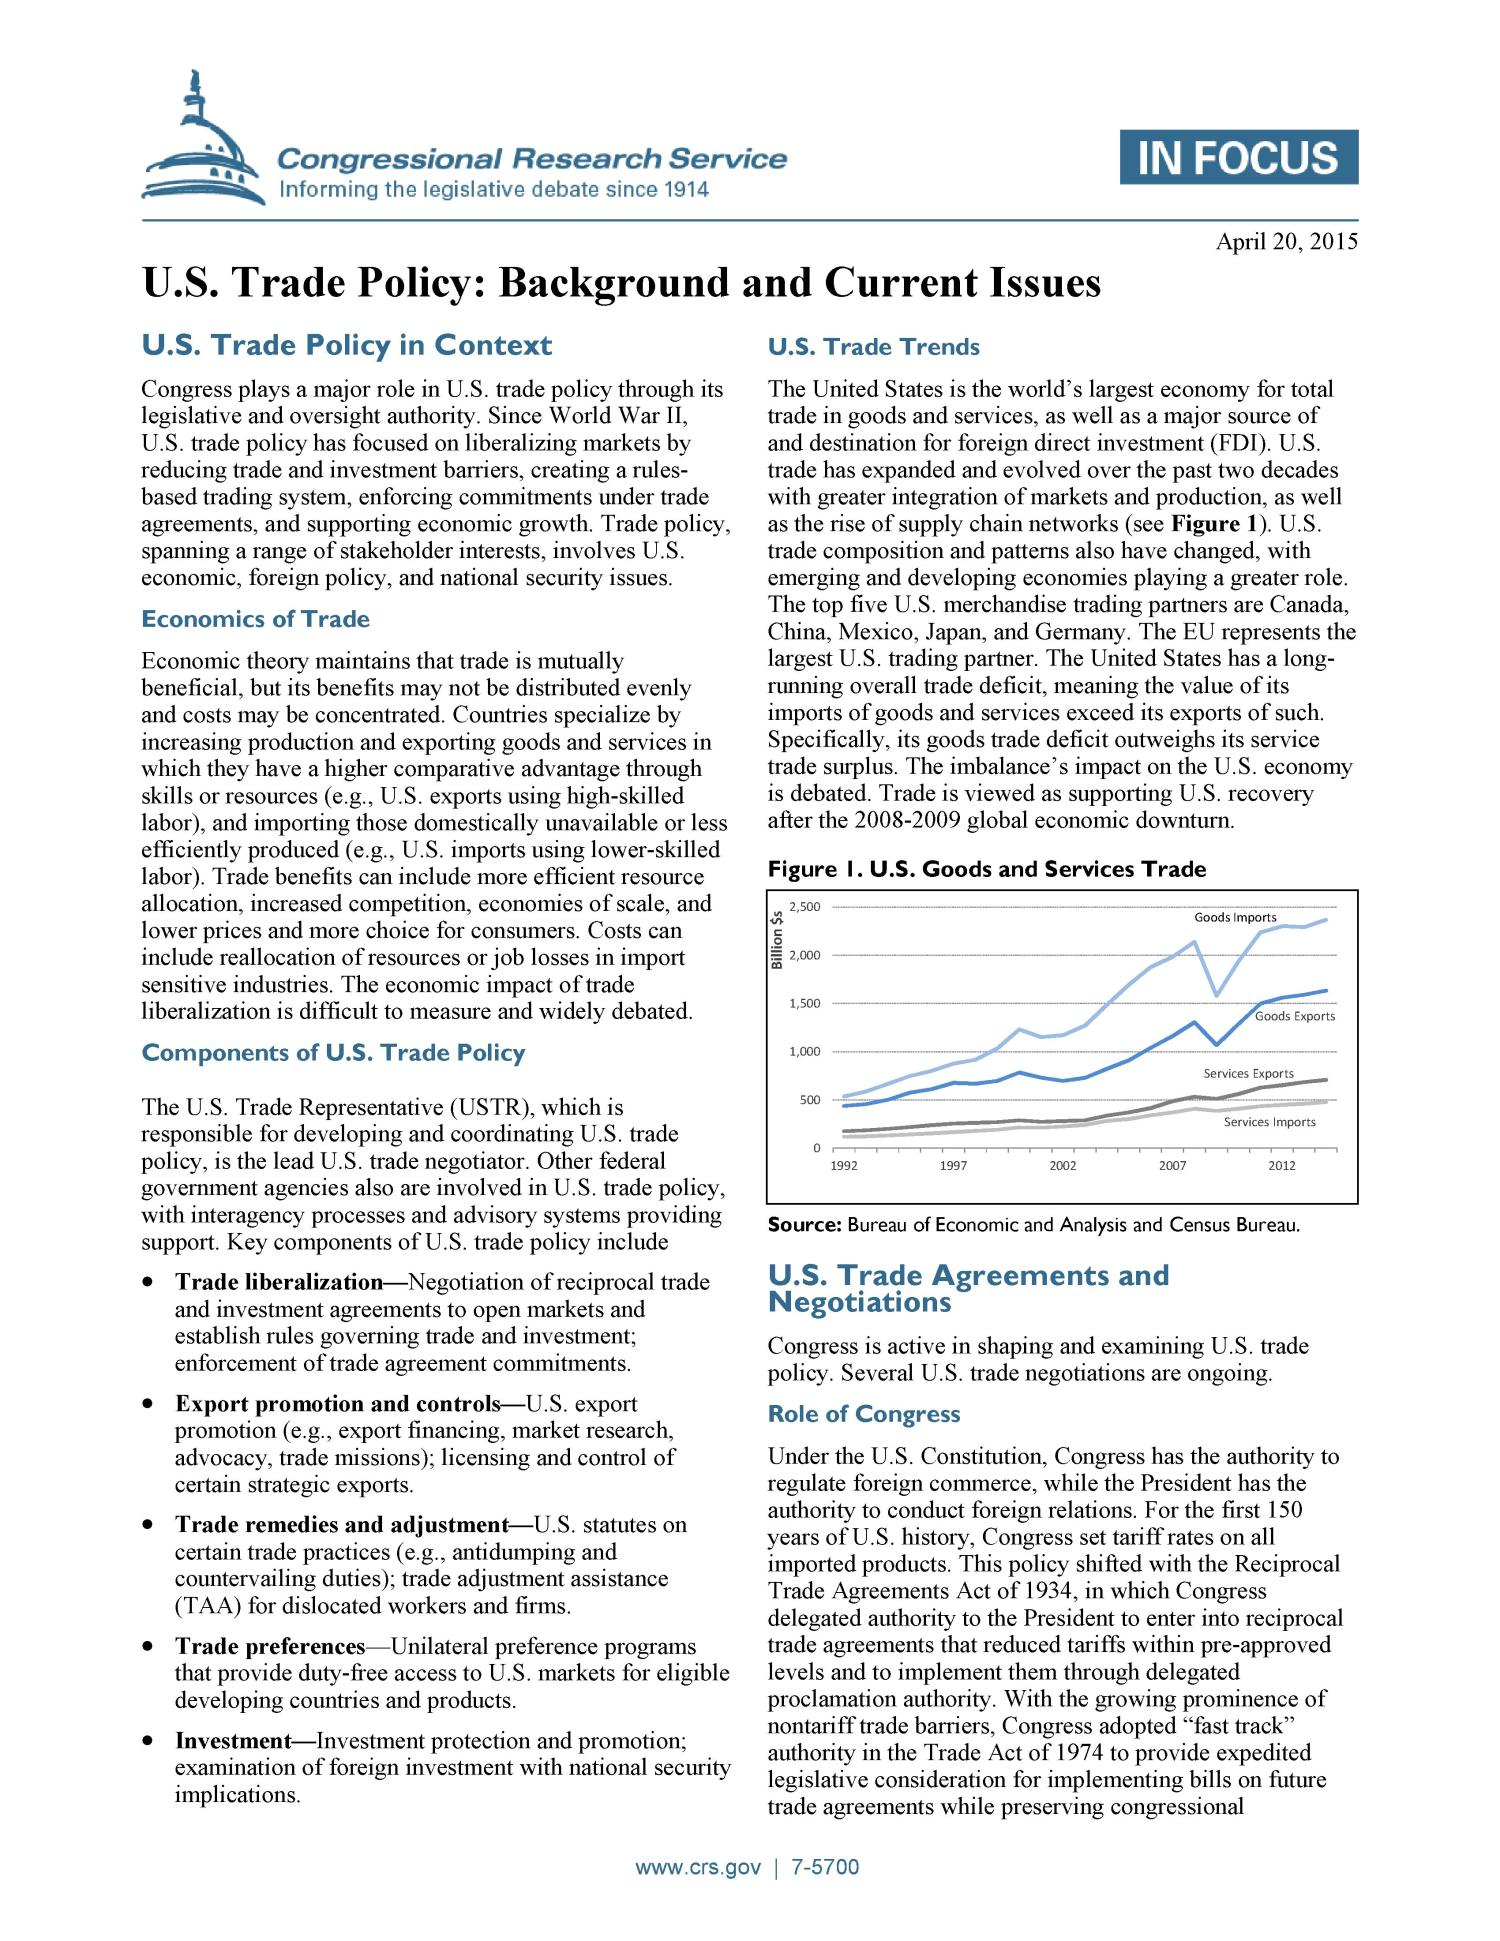 U.S. Trade Policy: Background and Current Issues                                                                                                      [Sequence #]: 1 of 2